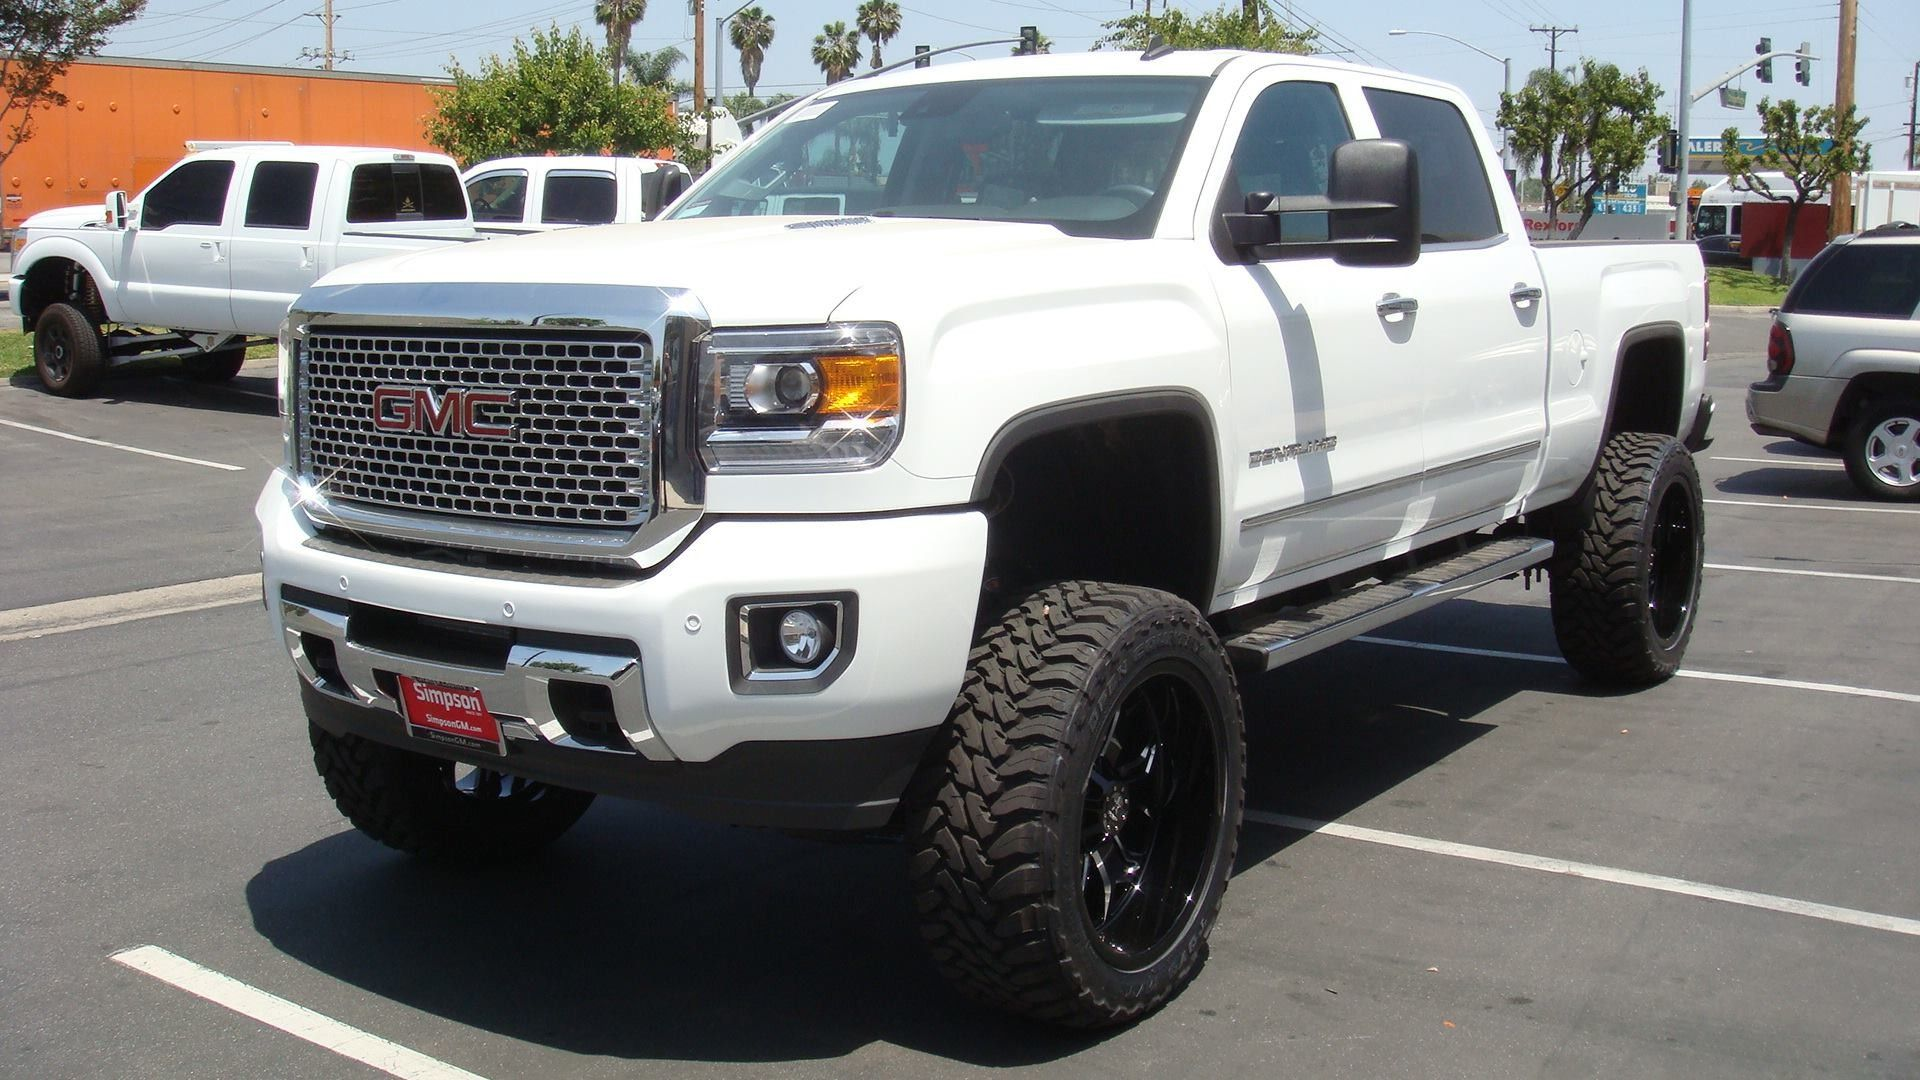 gallery for dodge ram 3500 2016 image - 2015 Dodge Ram 3500 Lifted